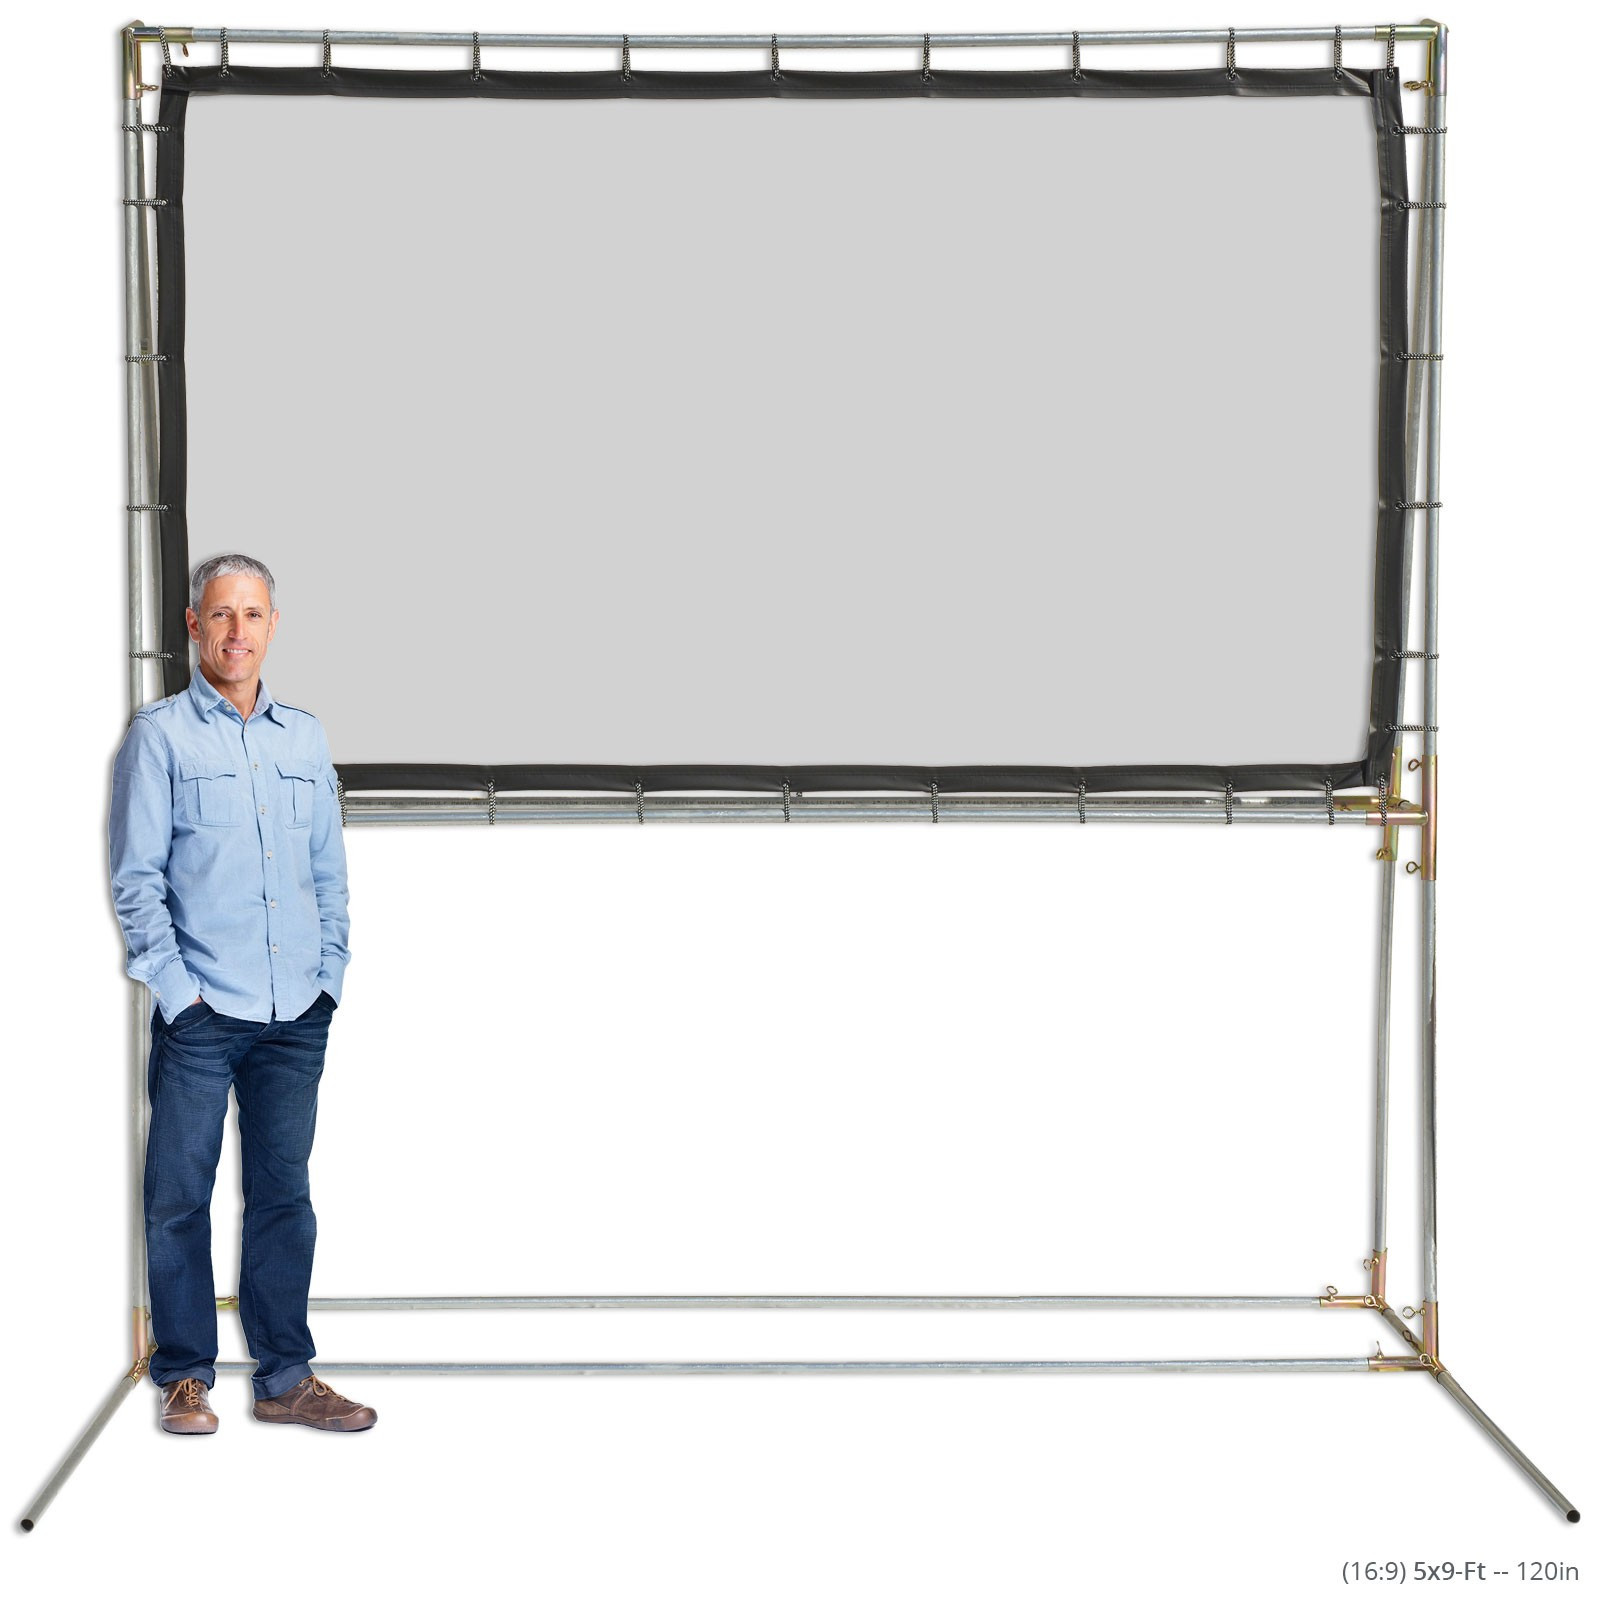 Best ideas about DIY Portable Projection Screen . Save or Pin Freestanding Movie Screen Kits Outdoor Projection Screens Now.